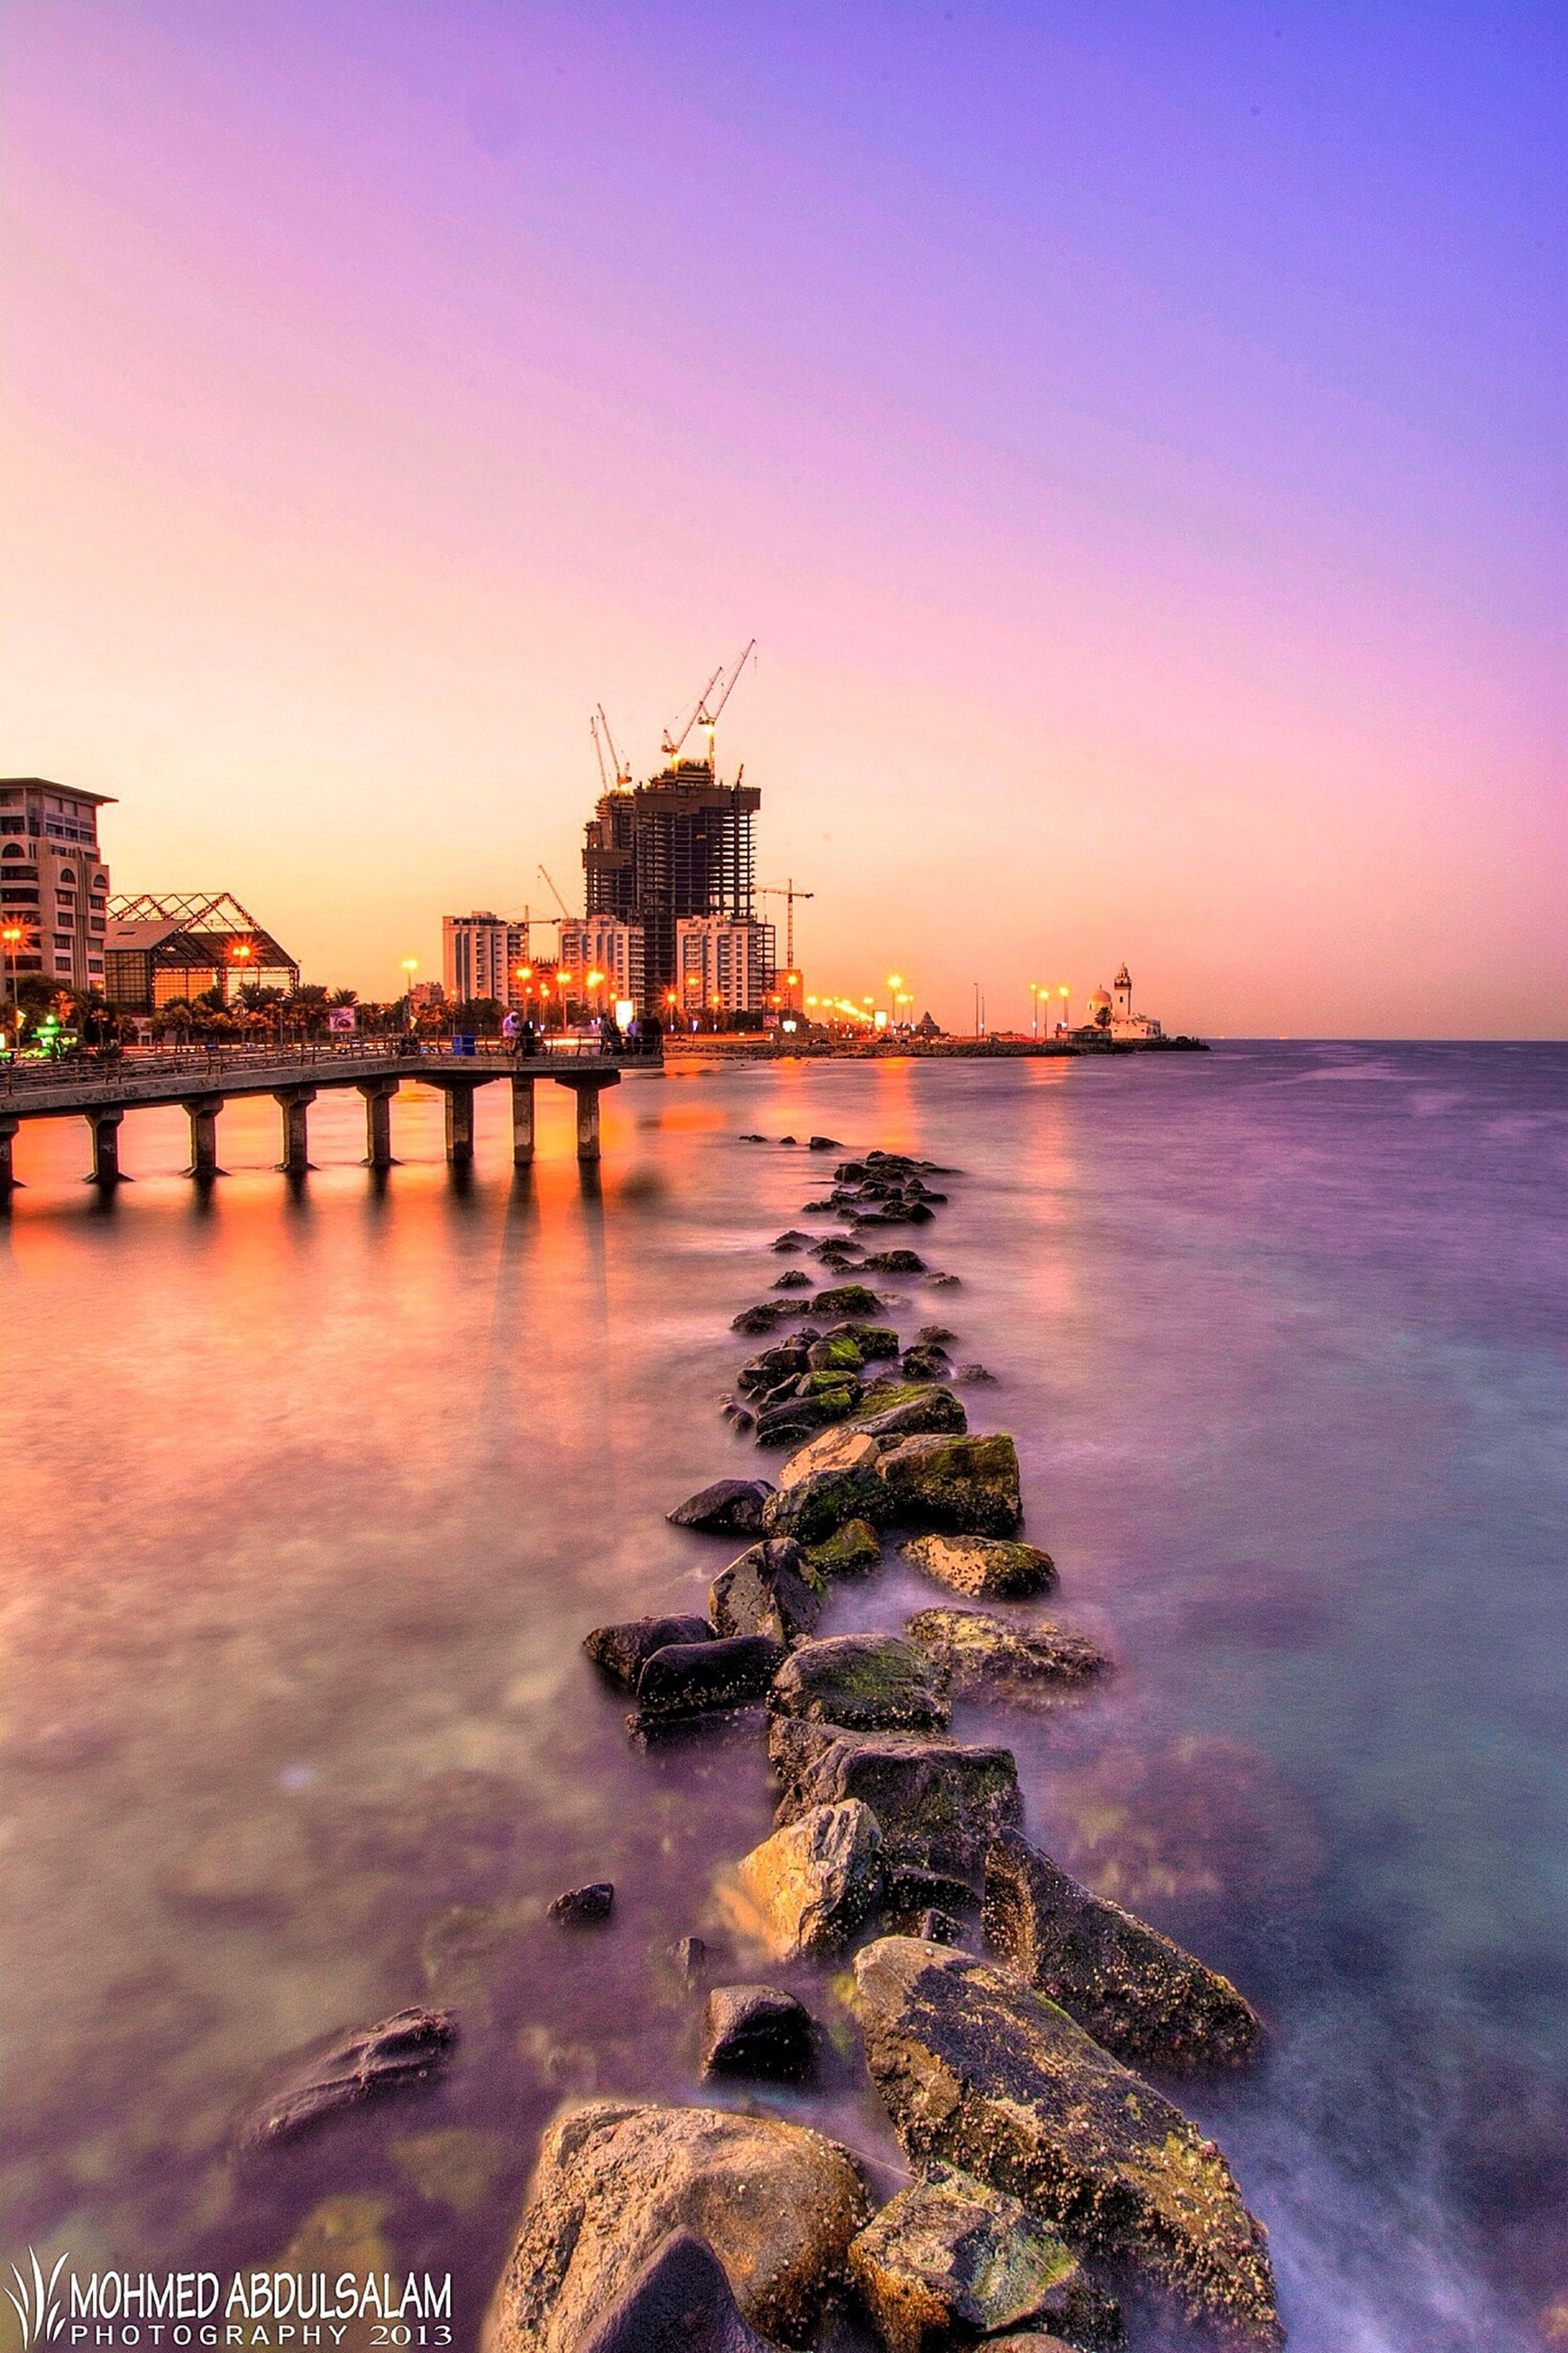 water, built structure, architecture, connection, bridge - man made structure, sunset, sea, clear sky, river, reflection, waterfront, bridge, copy space, sky, building exterior, tranquil scene, engineering, scenics, tranquility, nature